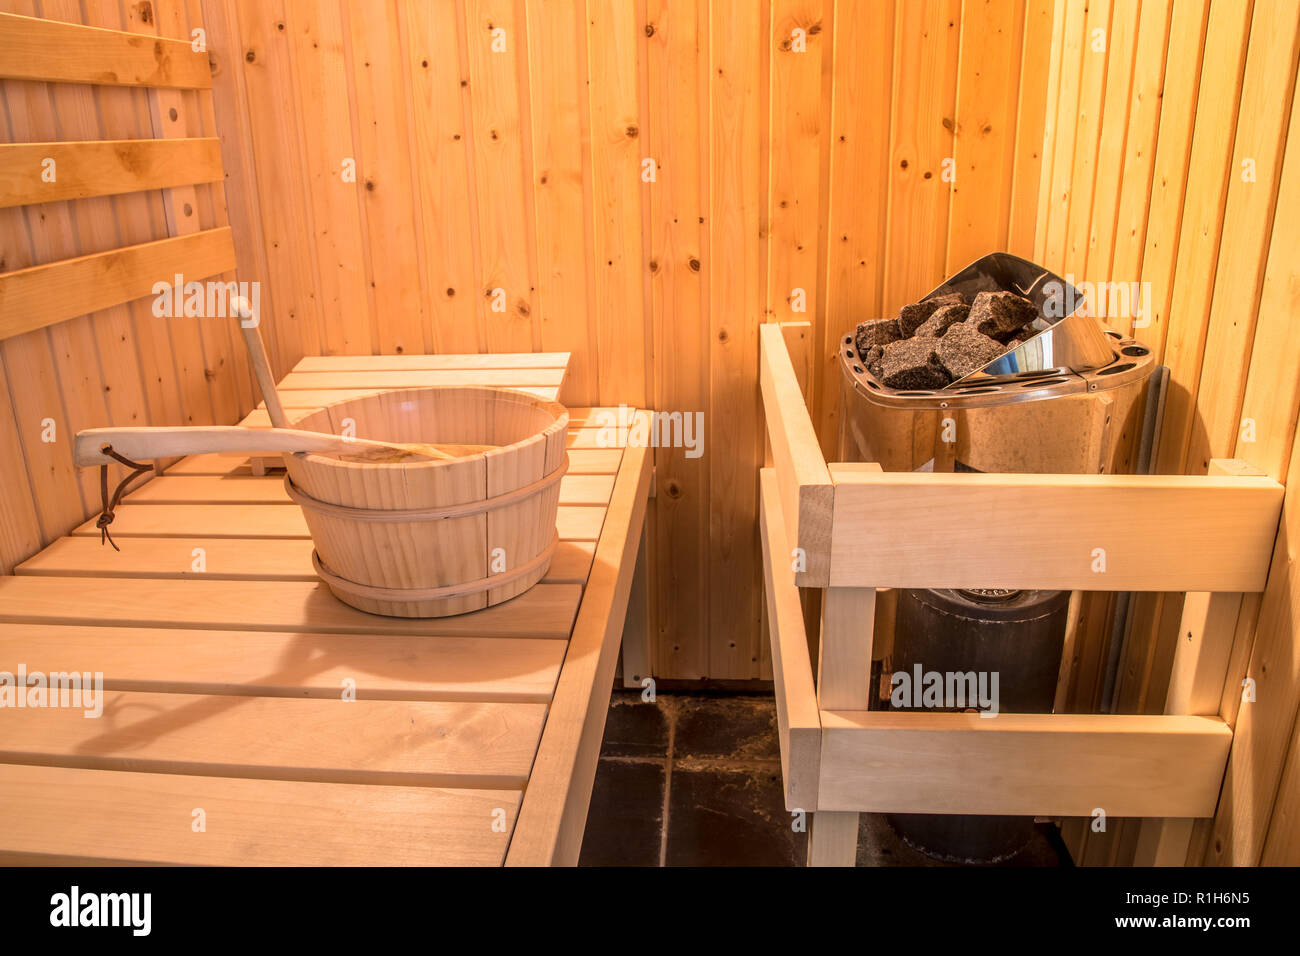 Sauna Finnish style interior with wooden bucket and seats - Stock Image